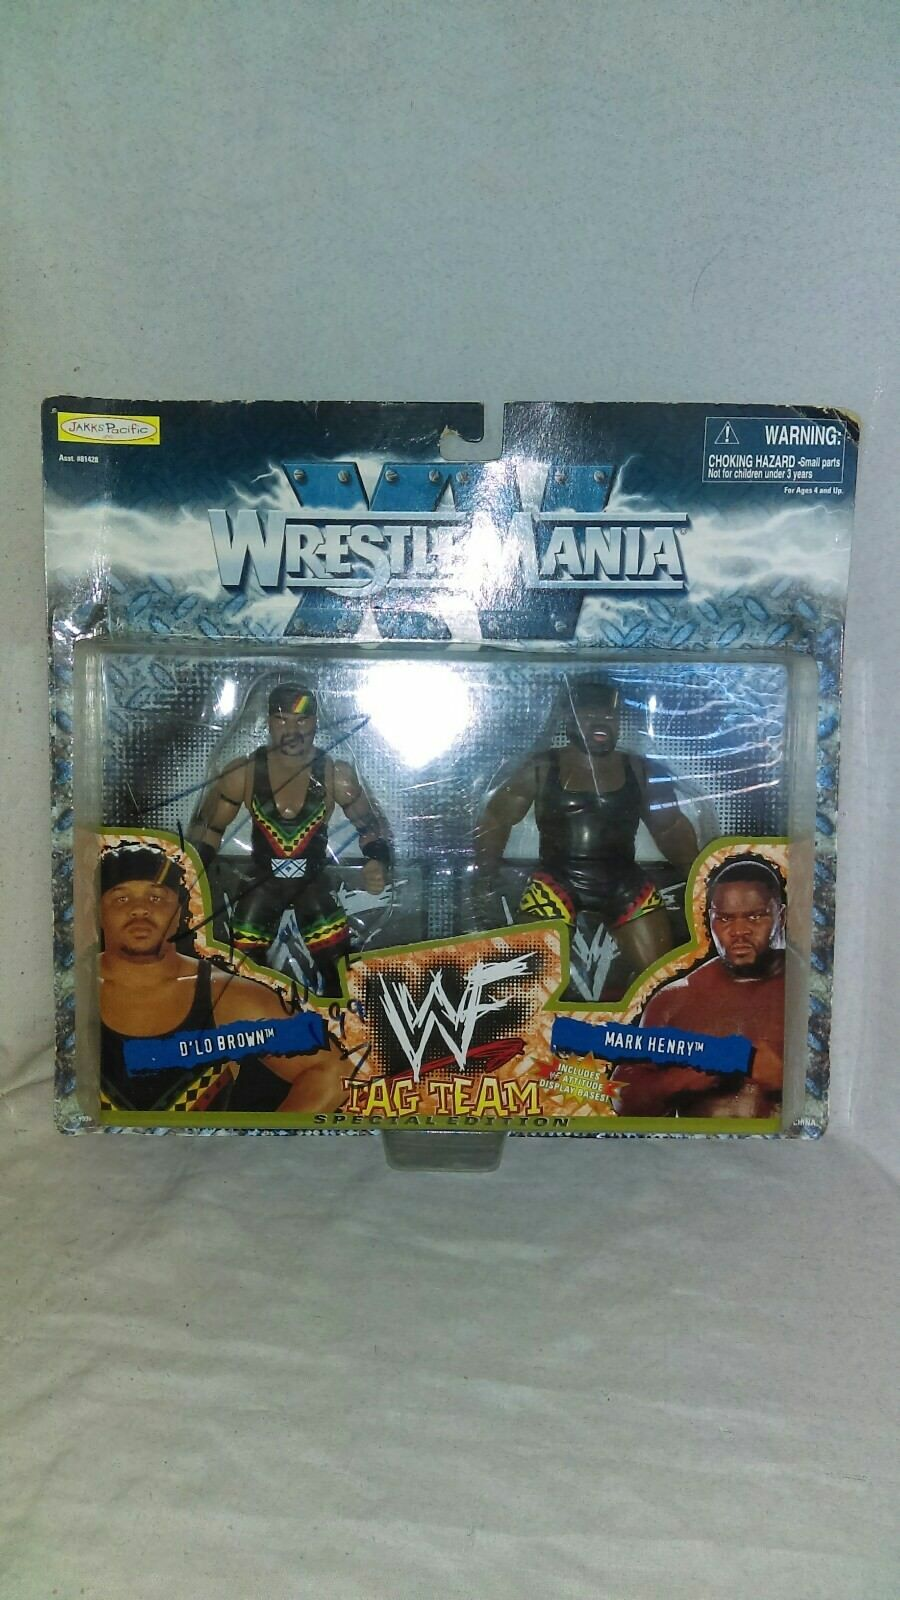 WWF WrestleMania Tag Team Special Edition D'lo D'lo D'lo Brown & Mark Henry 1998  SIGNED ca275d